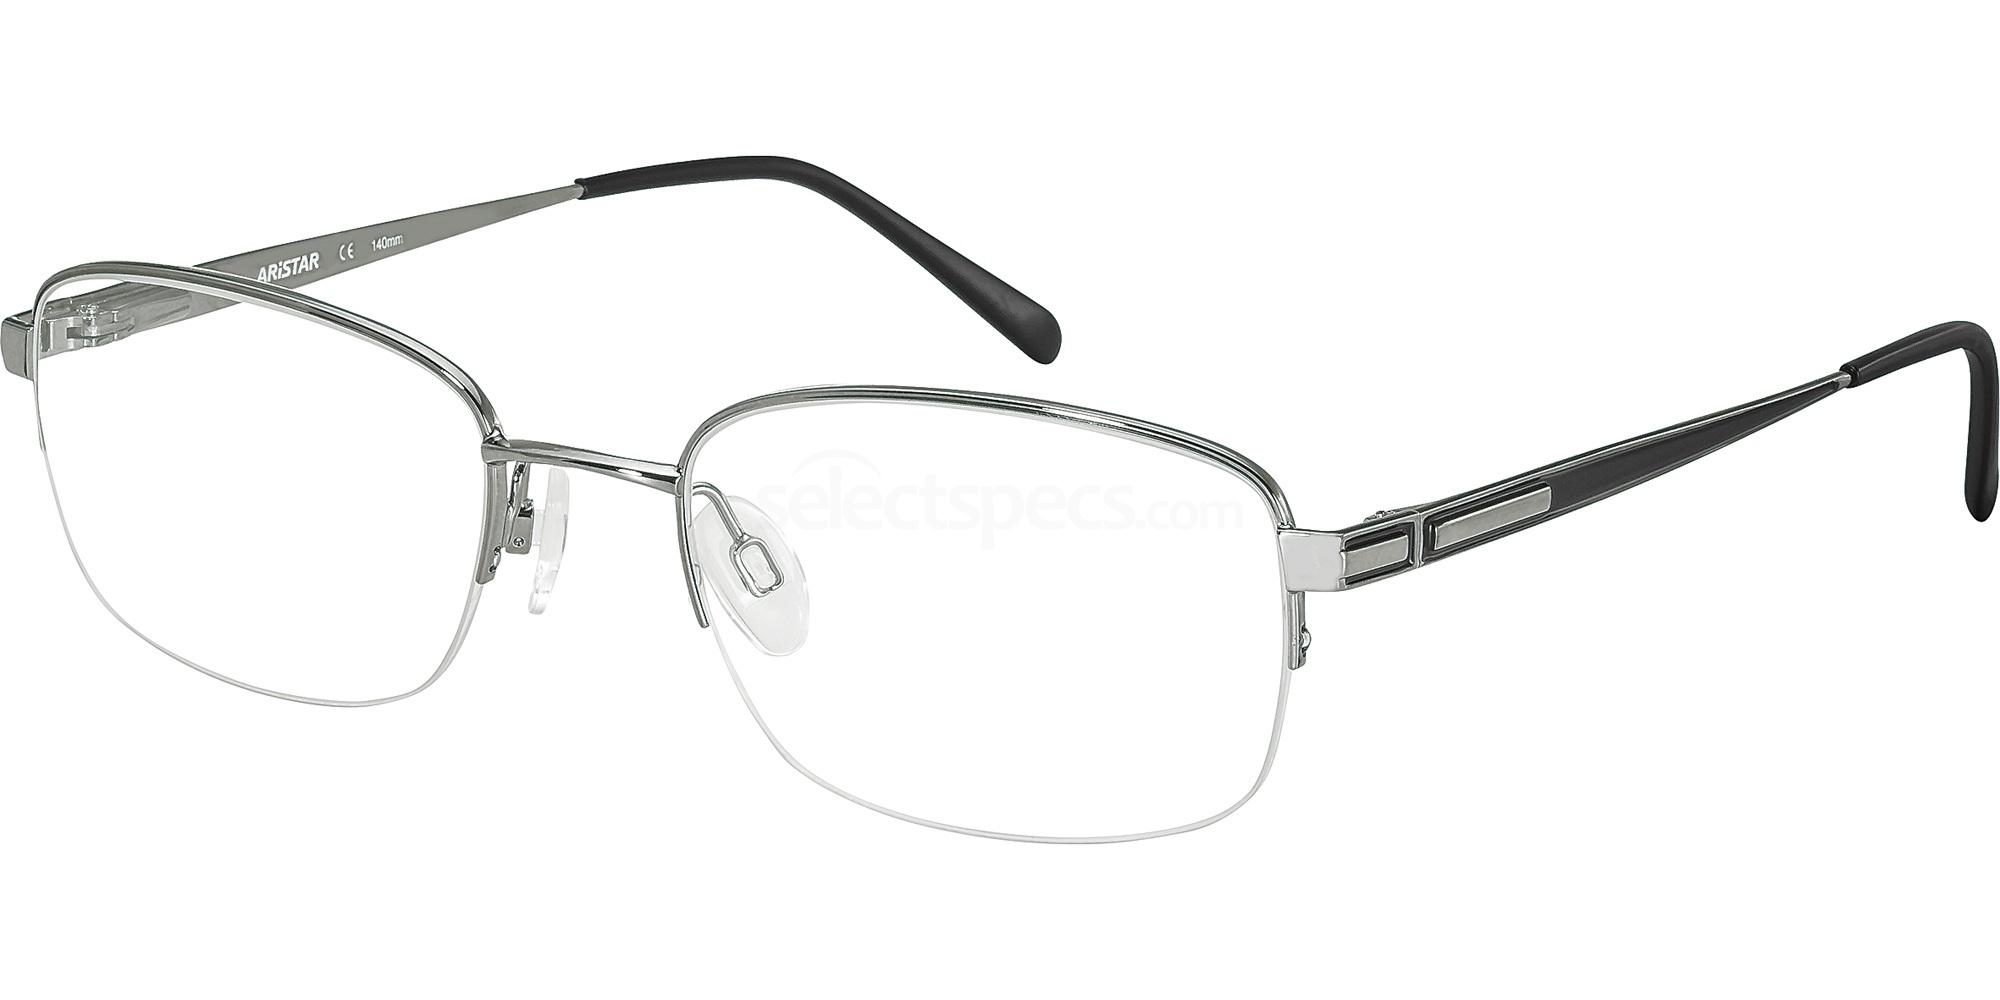 505 AR16221 Glasses, Aristar